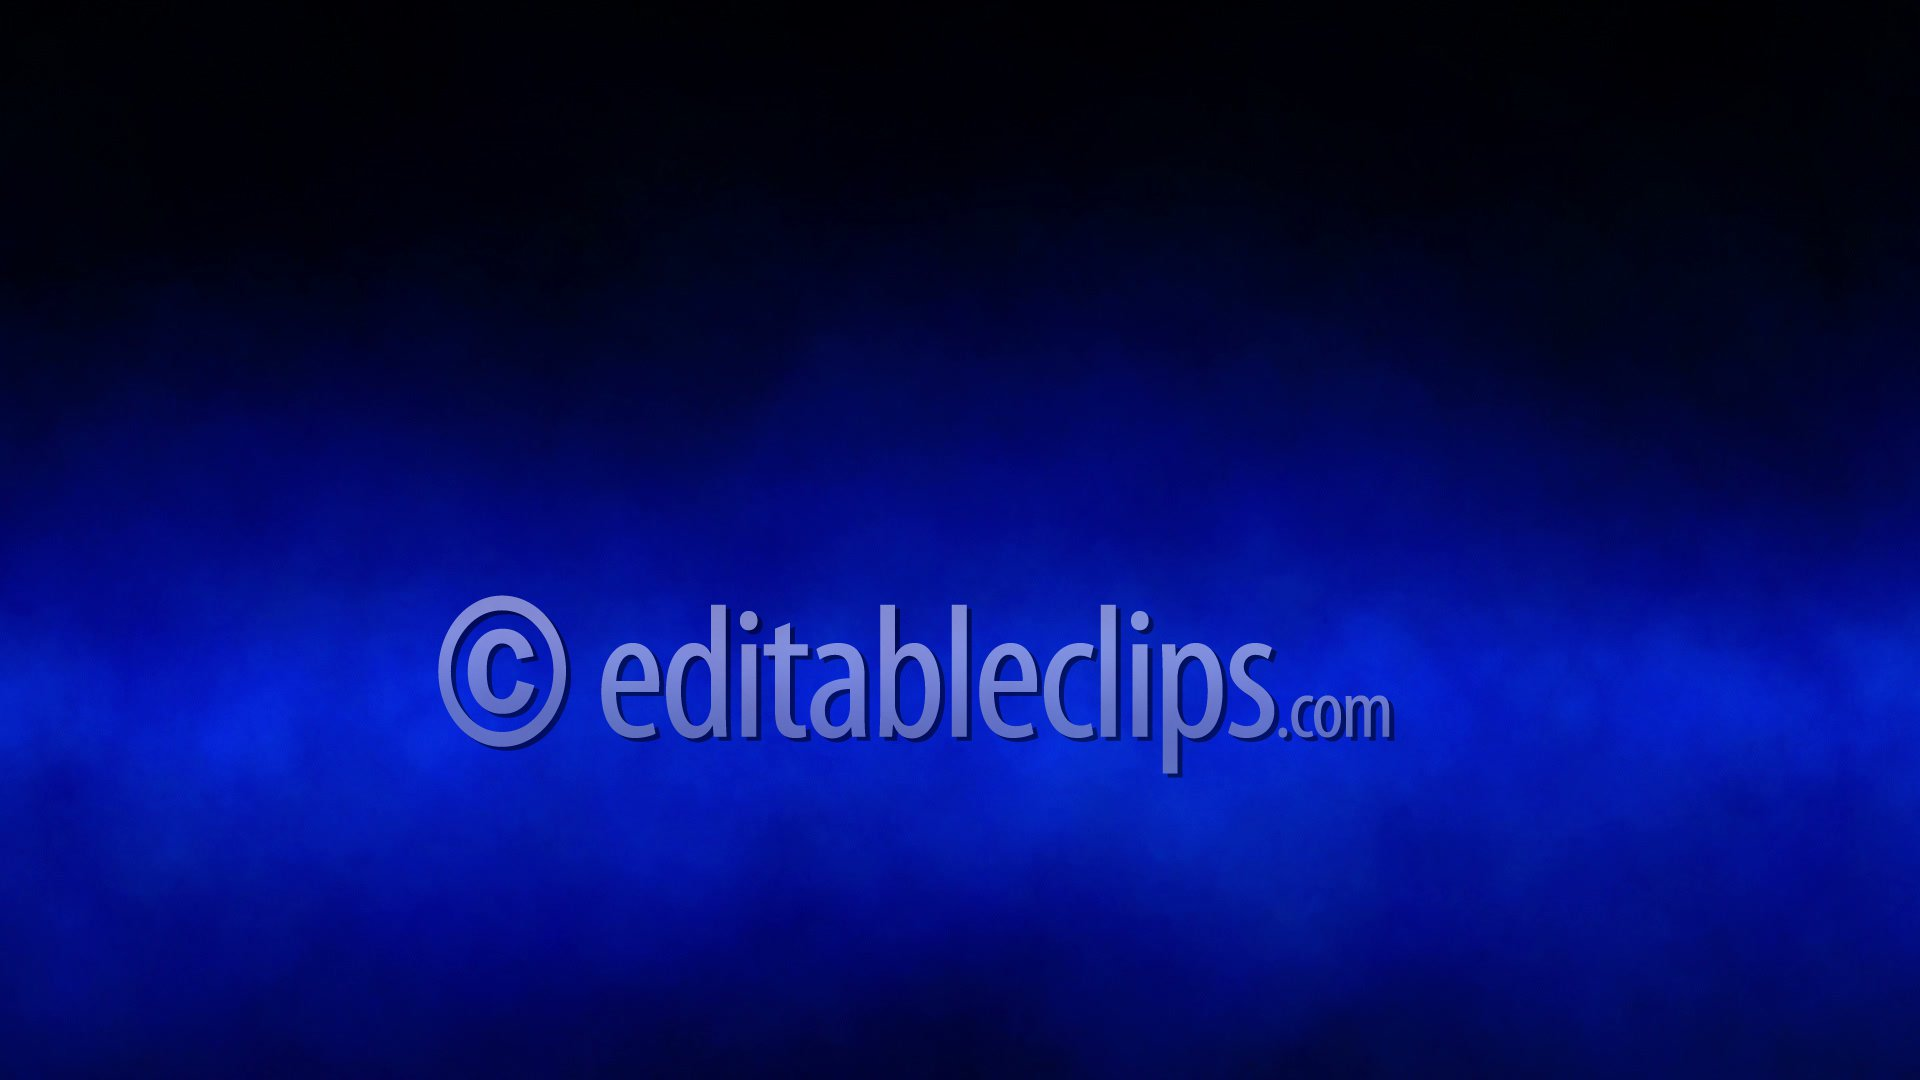 Blue Smoke Abstract Background Hd 1080 Editable Clips